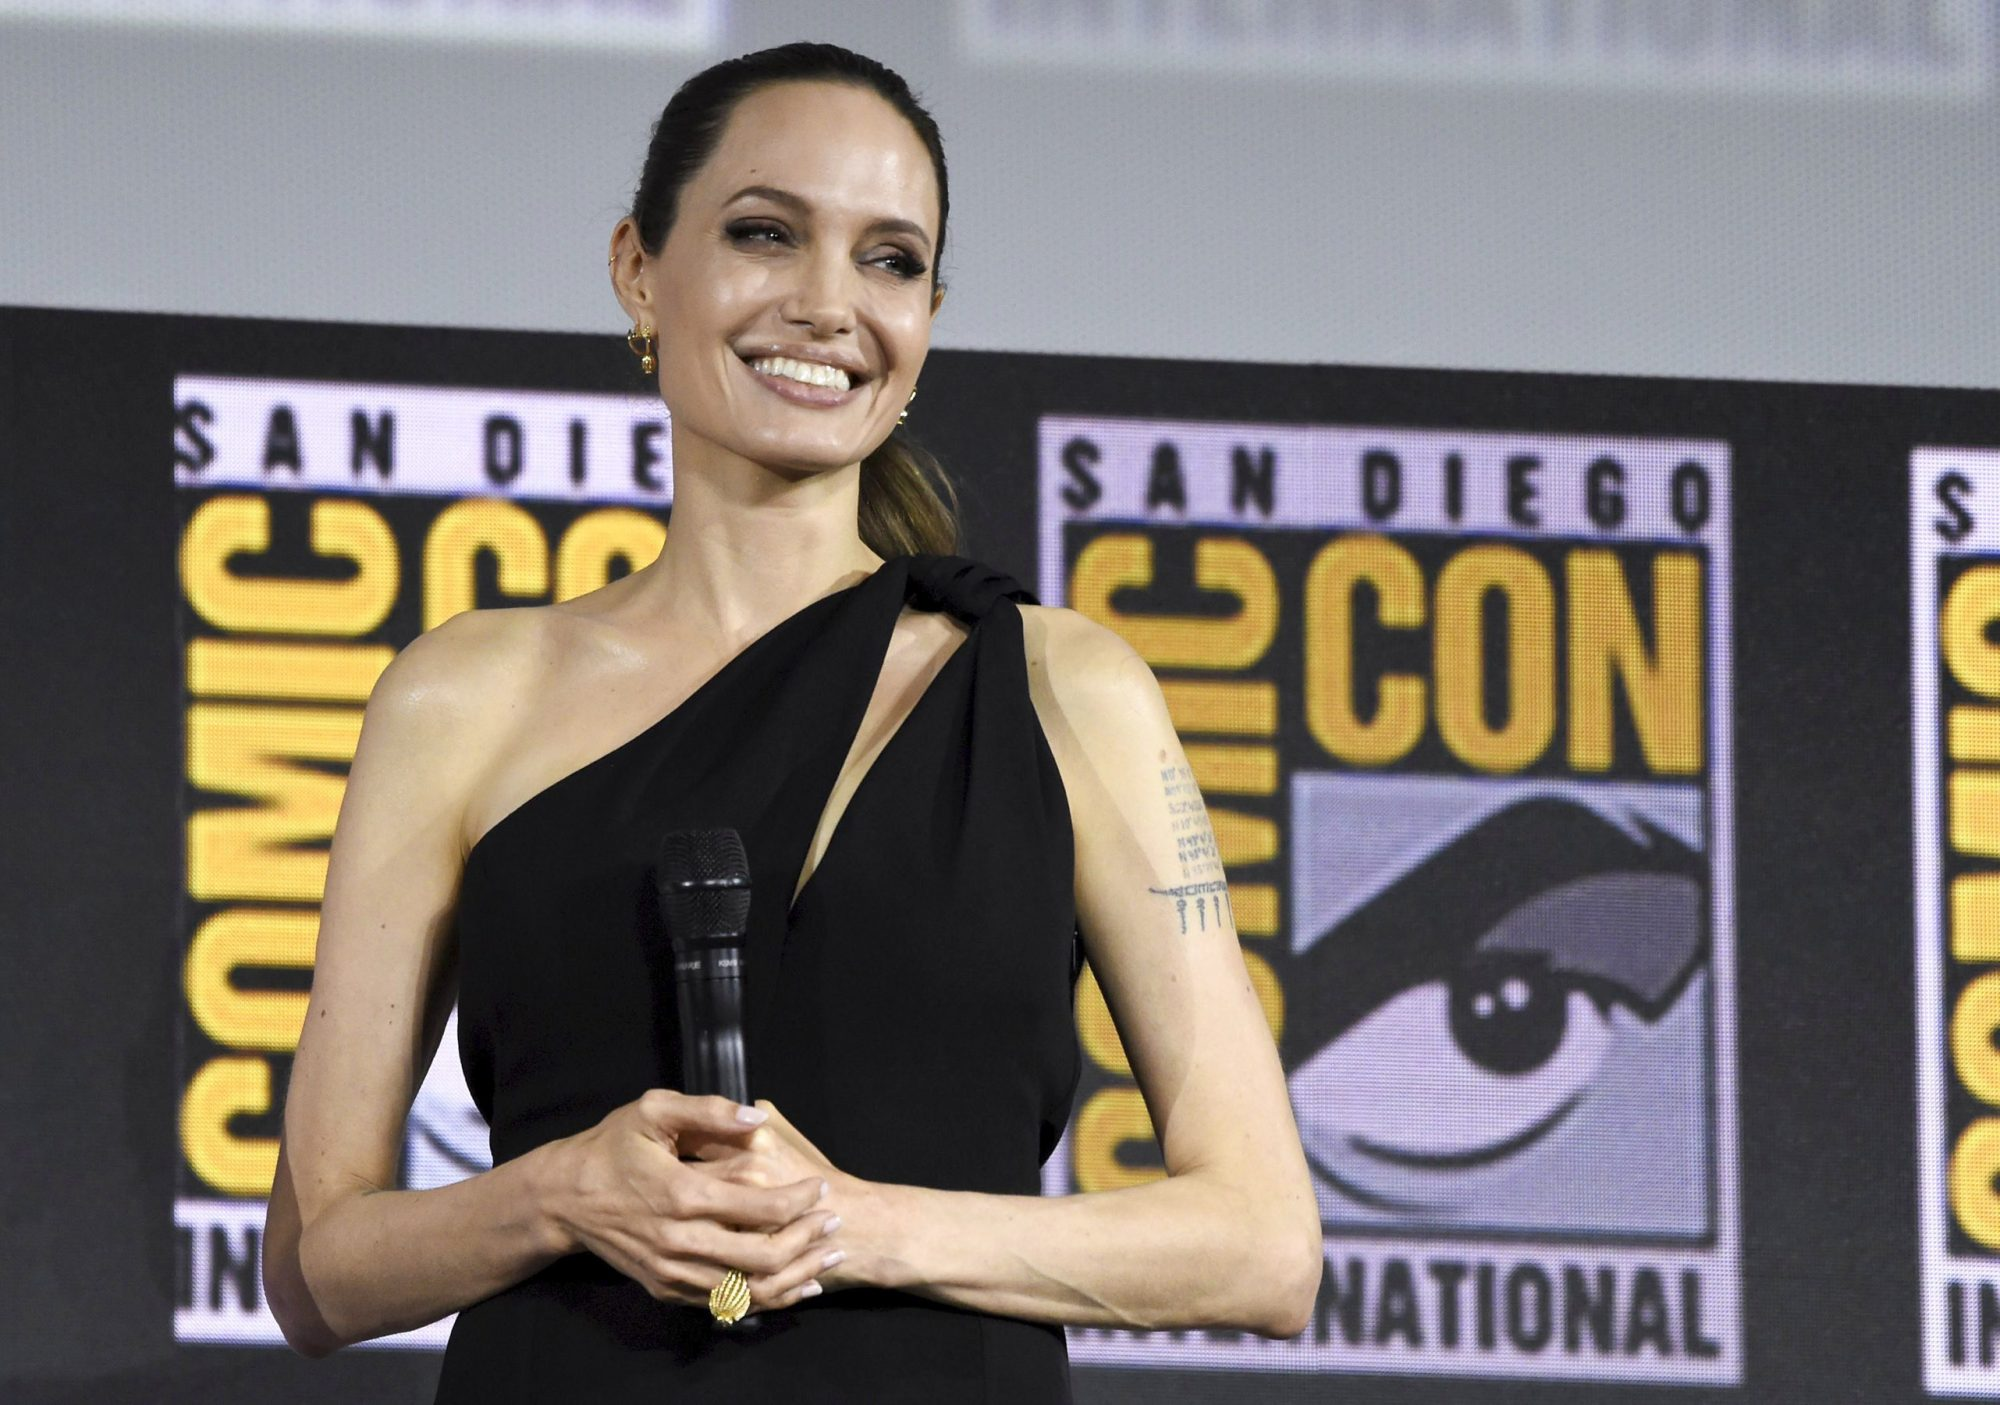 Mandatory Credit: Photo by Chris Pizzello/Invision/AP/Shutterstock (10342690d) Angelina Jolie attends the Marvel Studios panel on day three of Comic-Con International, in San Diego 2019 Comic-Con - Marvel Studios, San Diego, USA - 20 Jul 2019